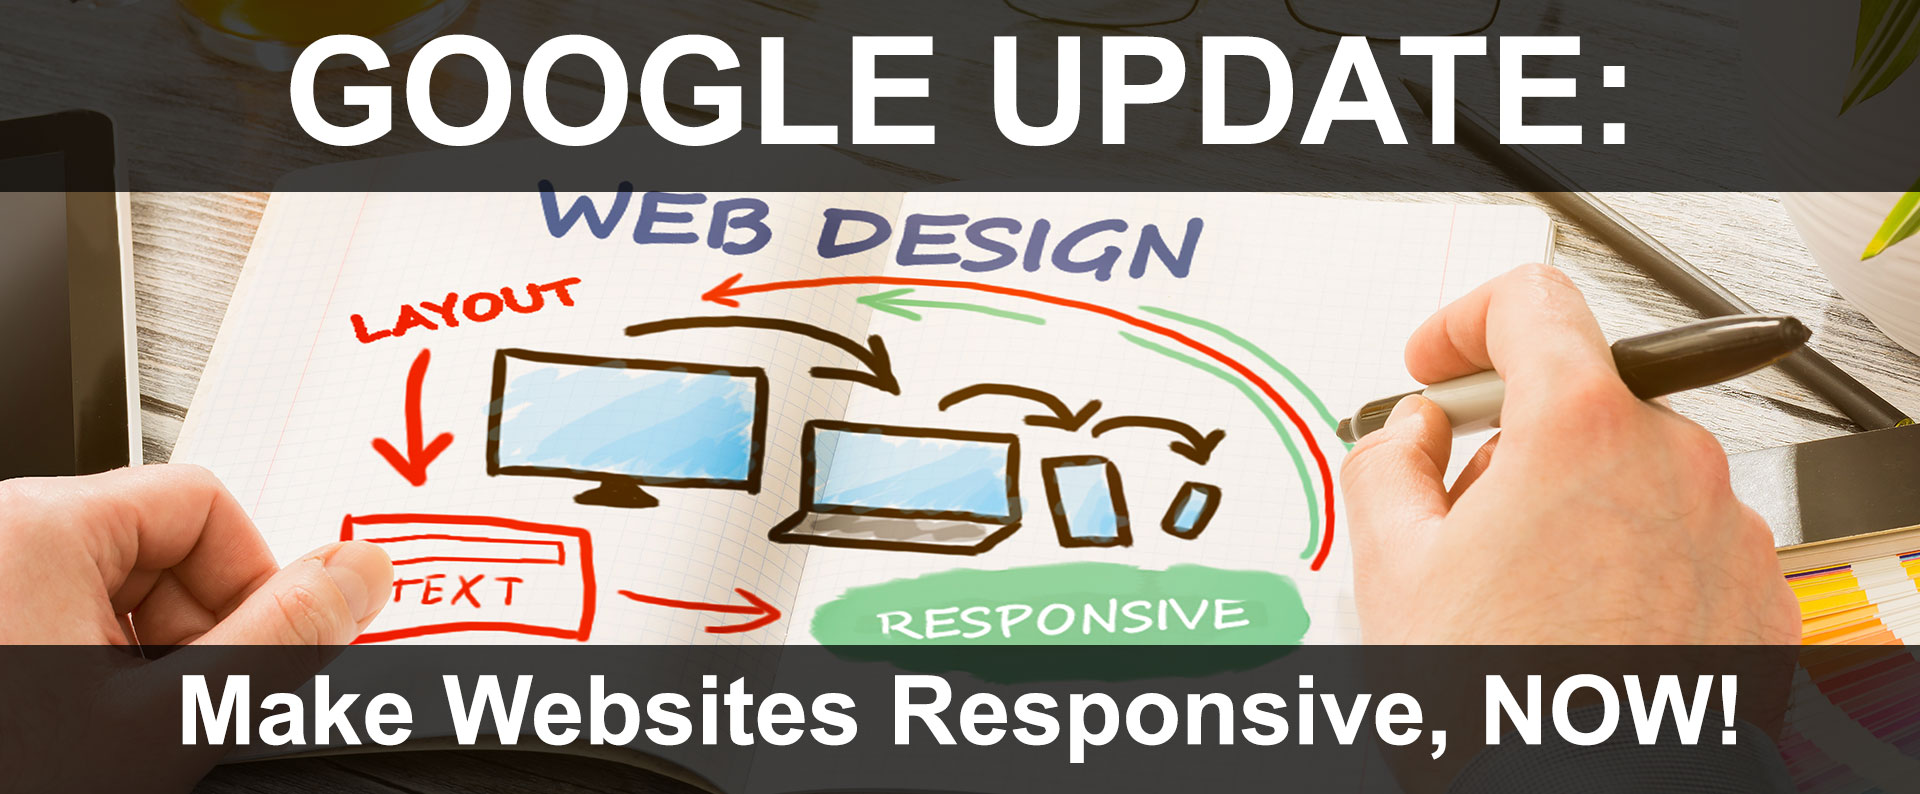 One Responsive Website Is The Answer To Google's Upcoming Mobile-First Indexing Update!